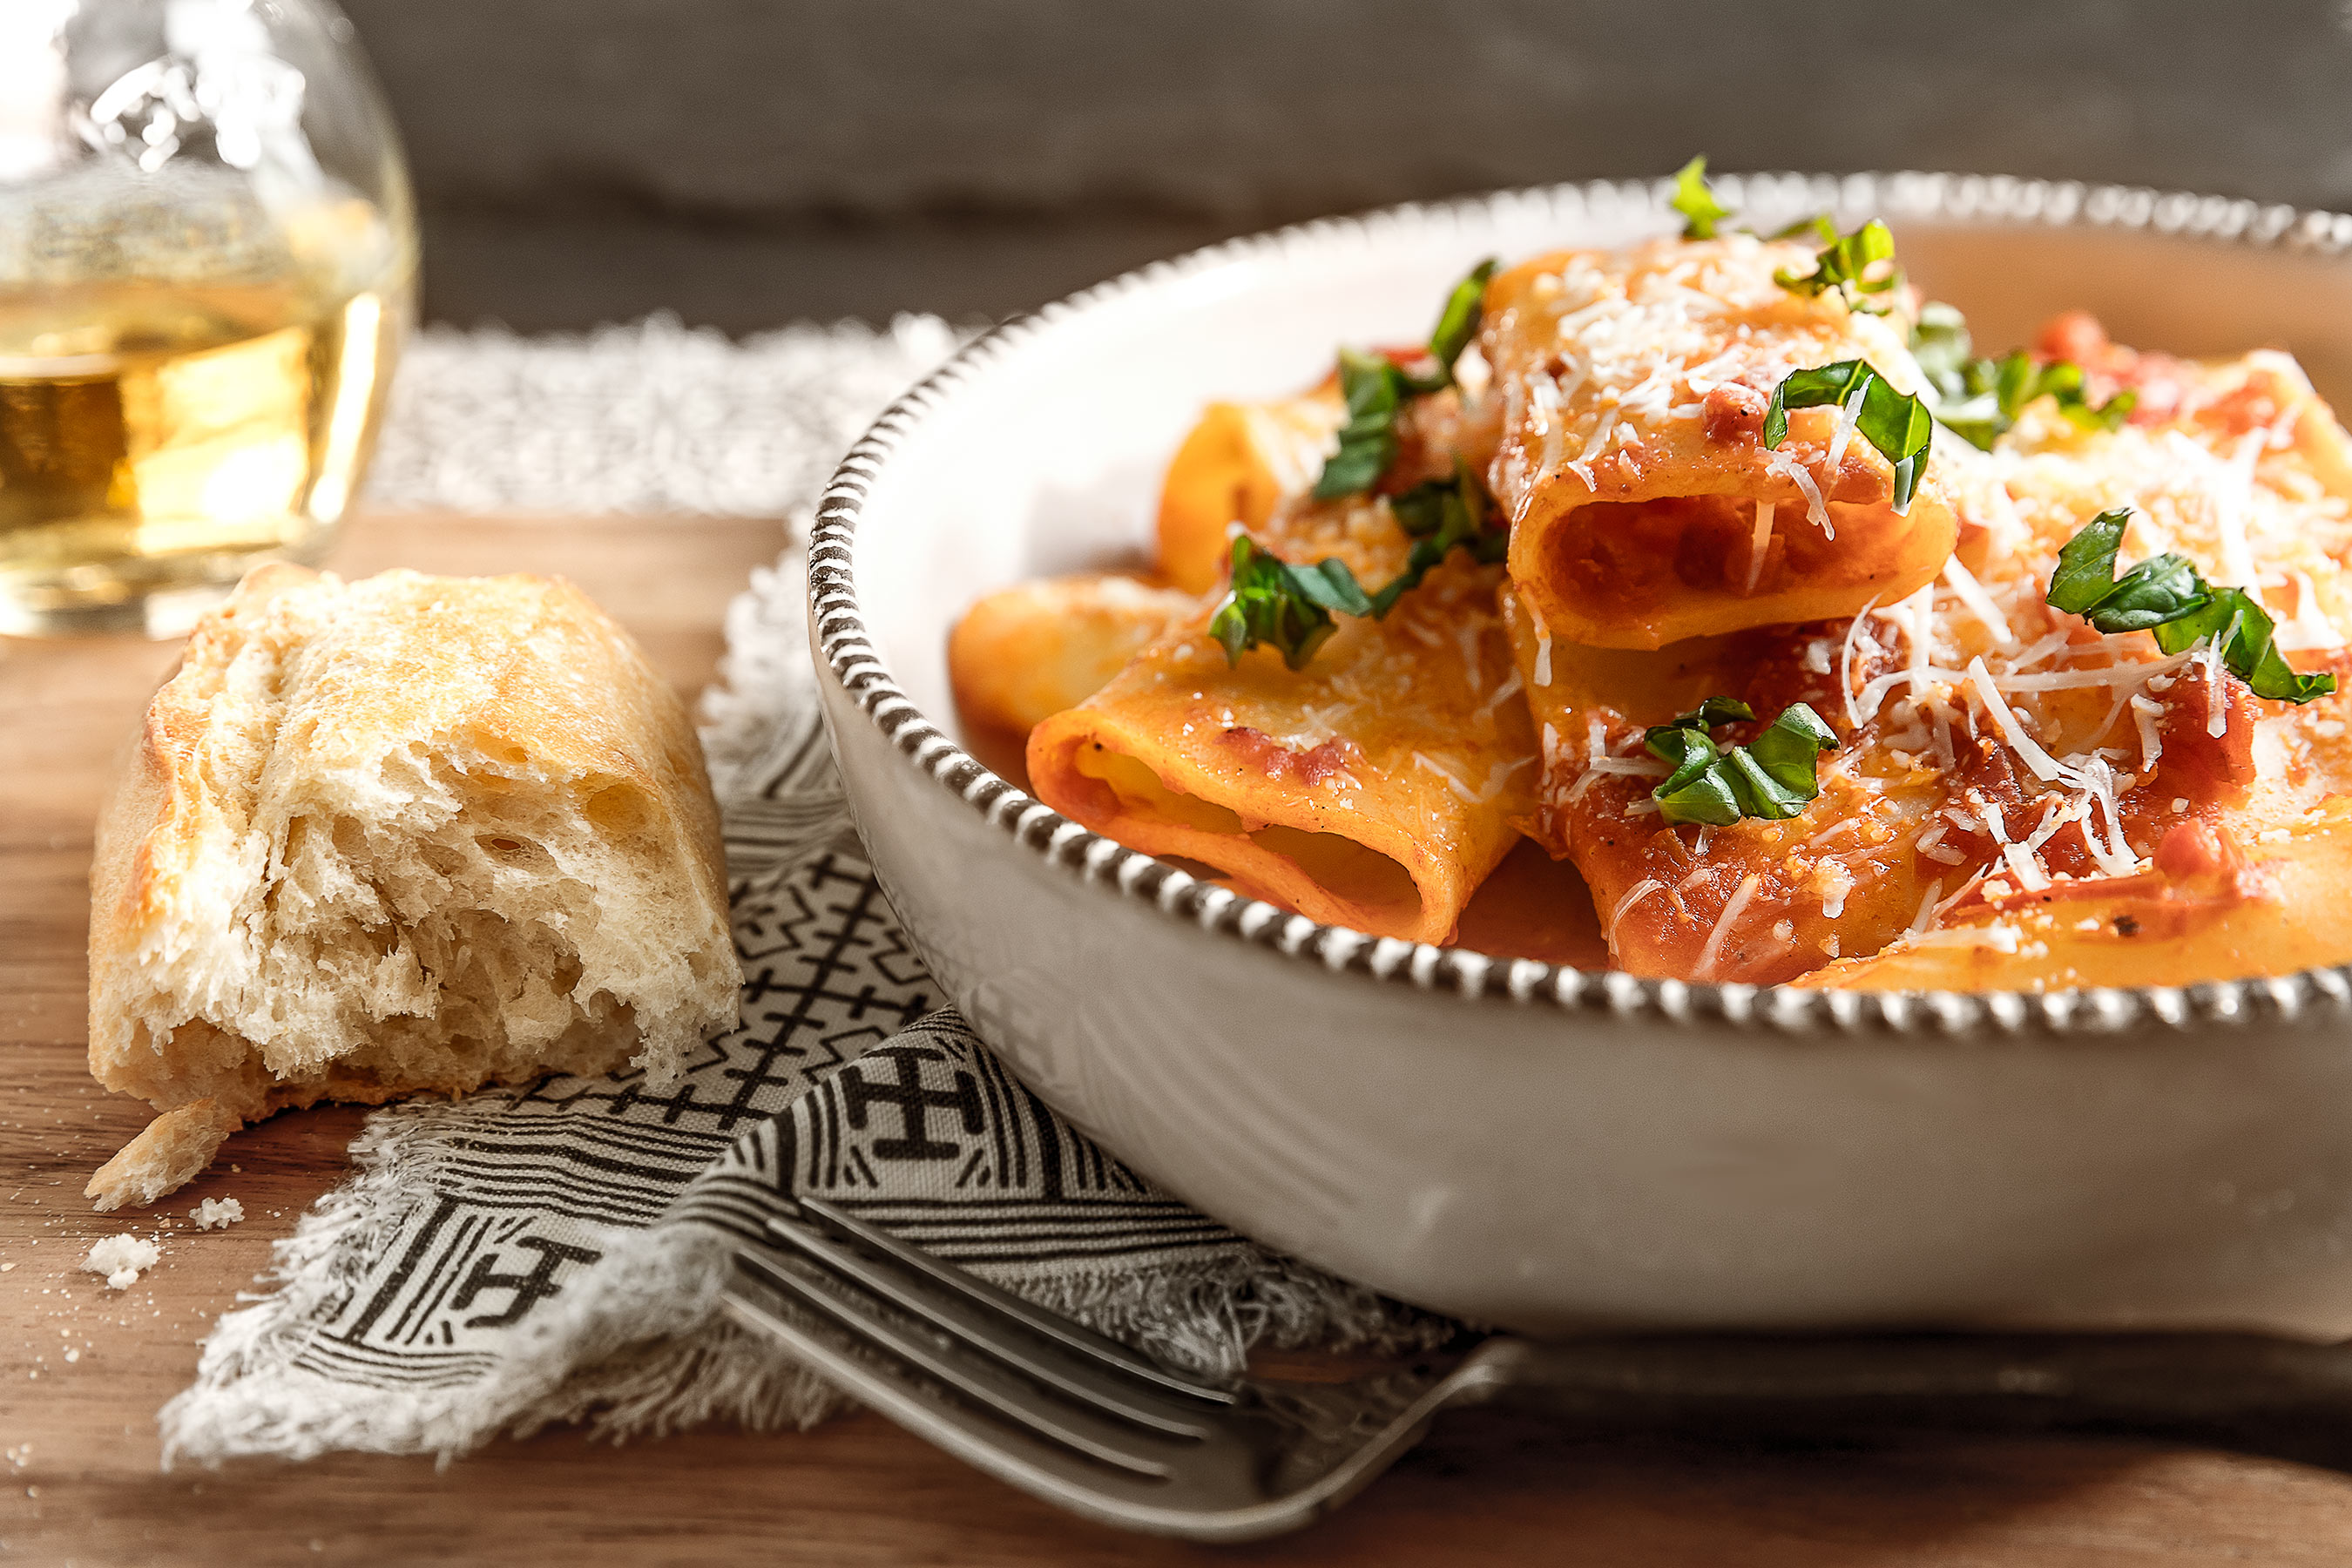 Rigatoni with rustic italian bread, olive oil, parmesan and basil